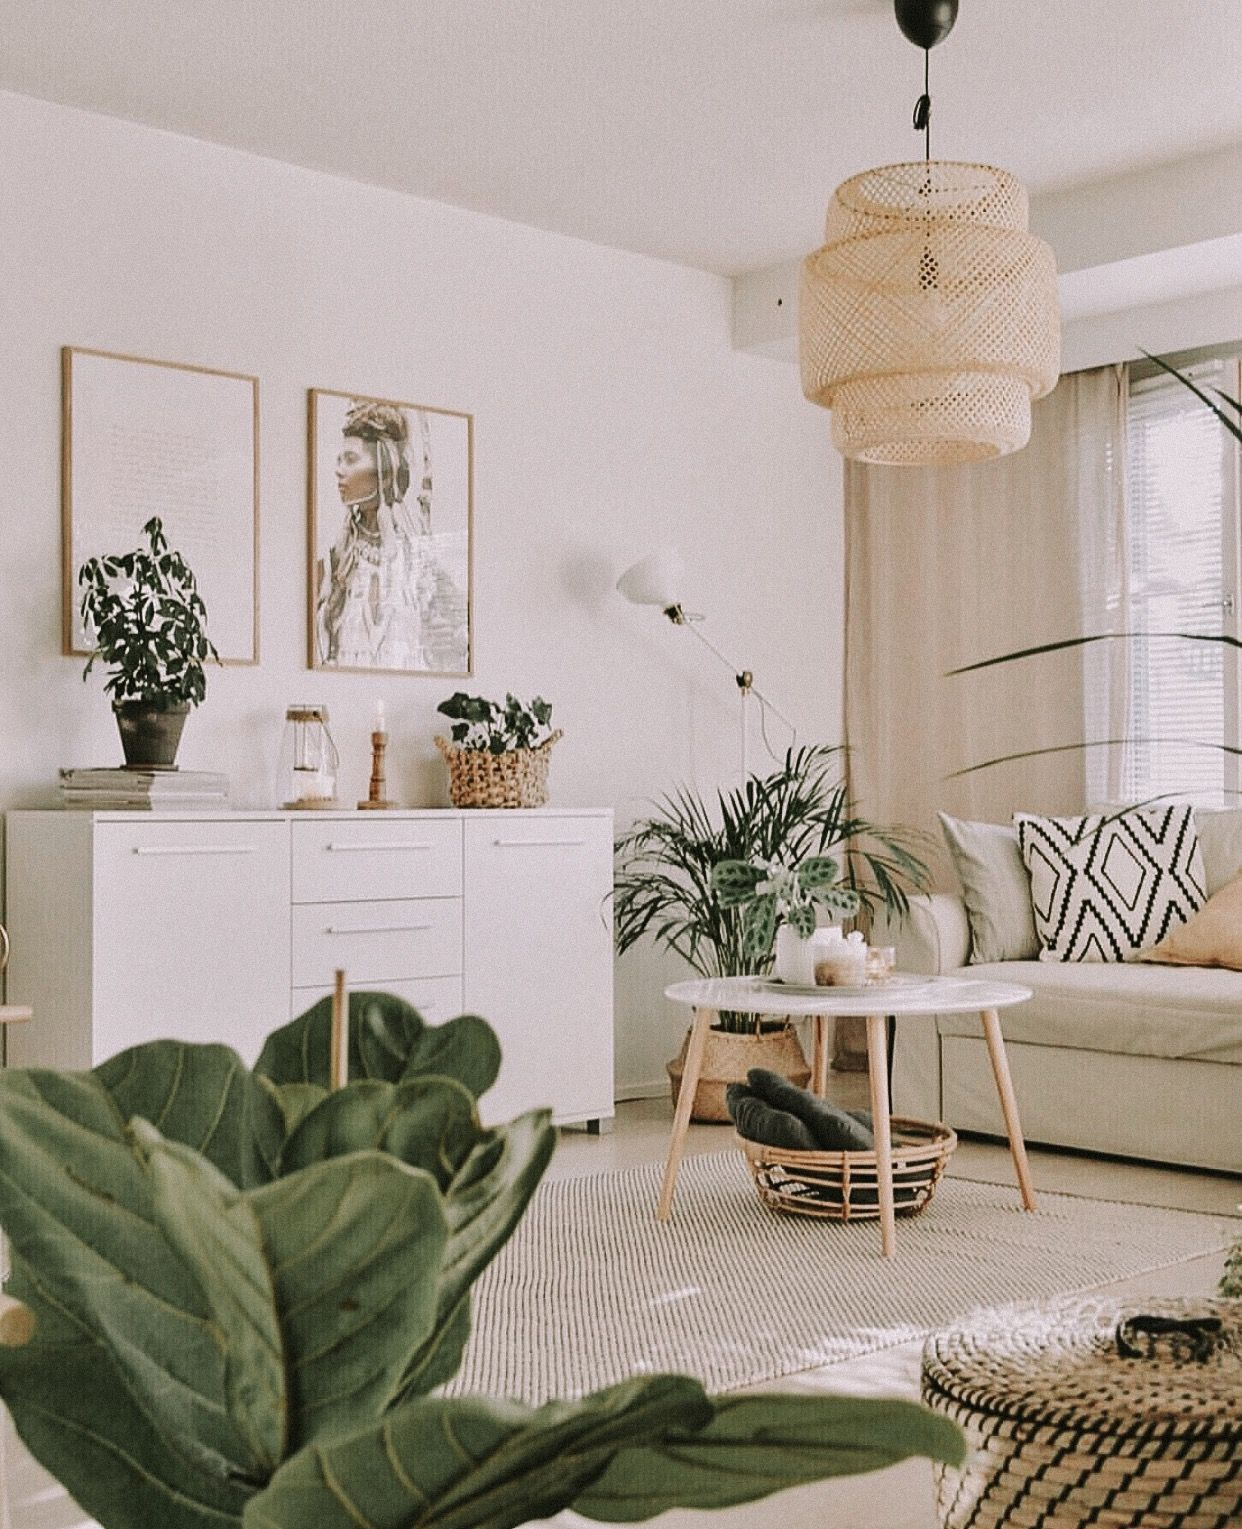 Pinterest F O R T F I E L D Neutral And Green Living Room Apartment Therapy Small Spaces Living Room Green Apartment Living Room